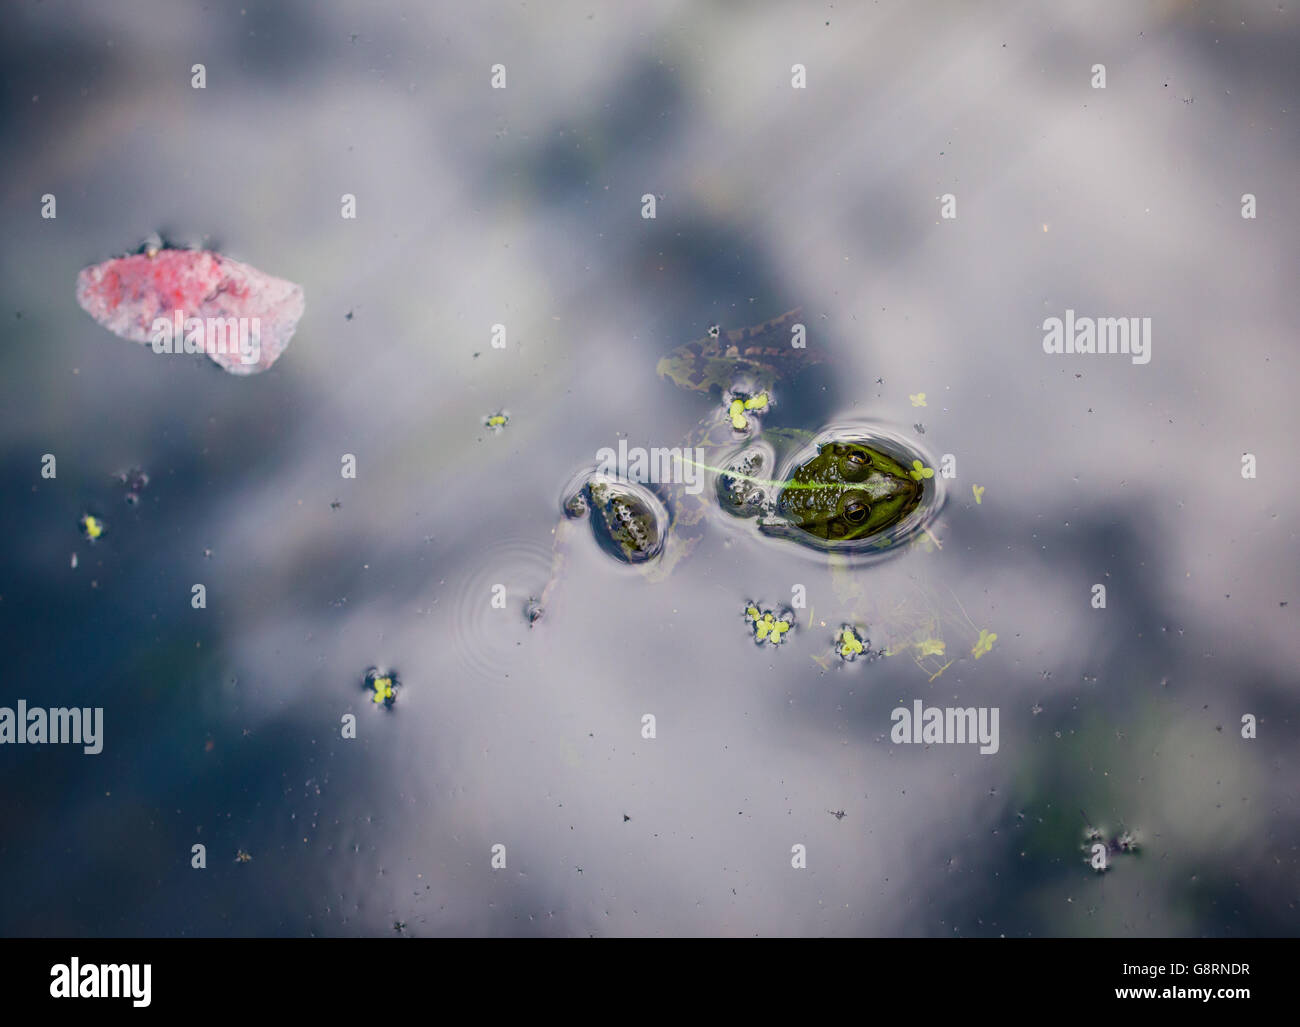 Perezi frog in the water - Stock Image